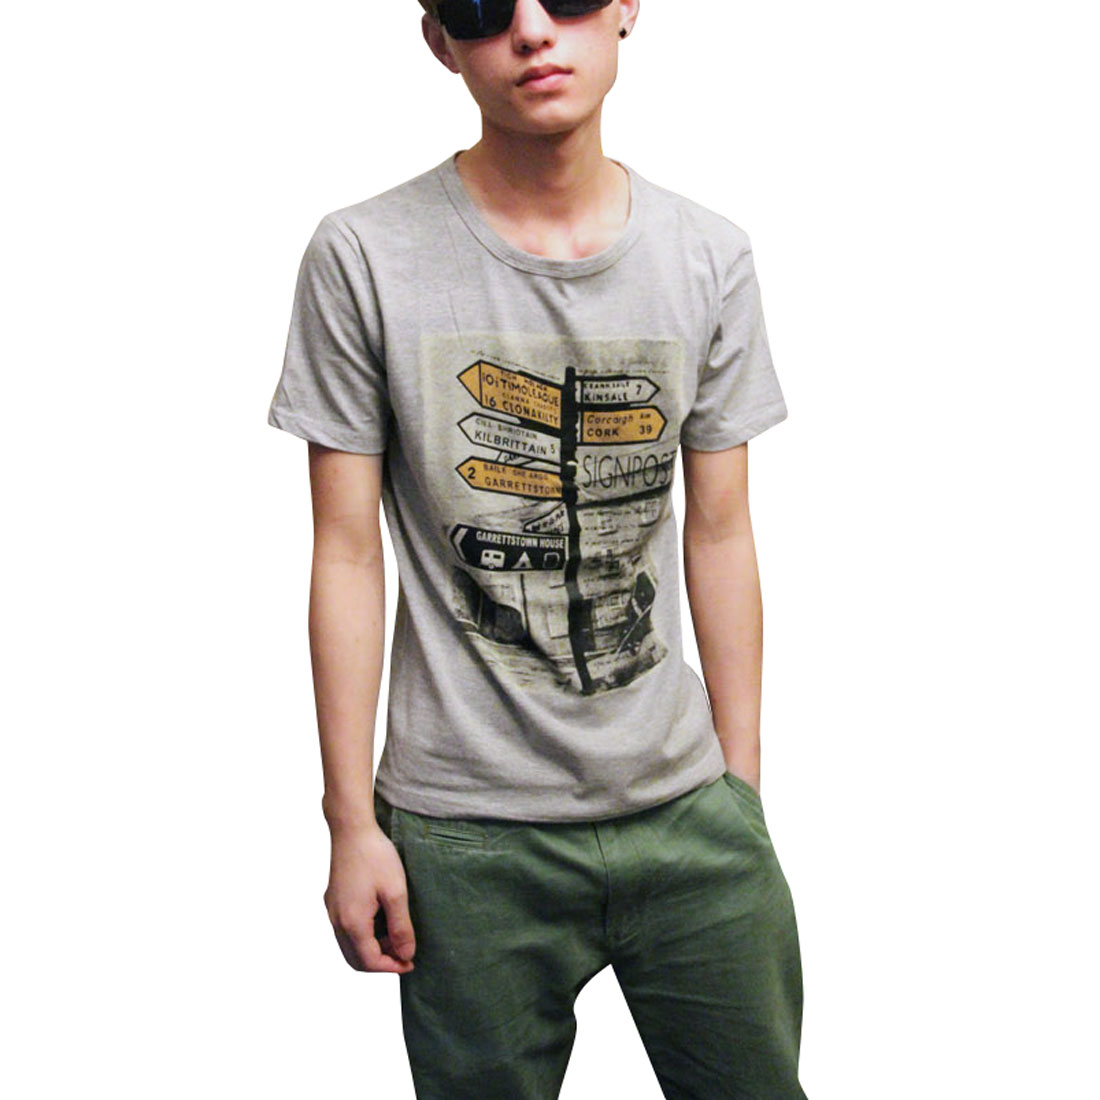 Man Fashional Round Neck Short Sleeves T-Shirt Blouse Top NEW Gray M